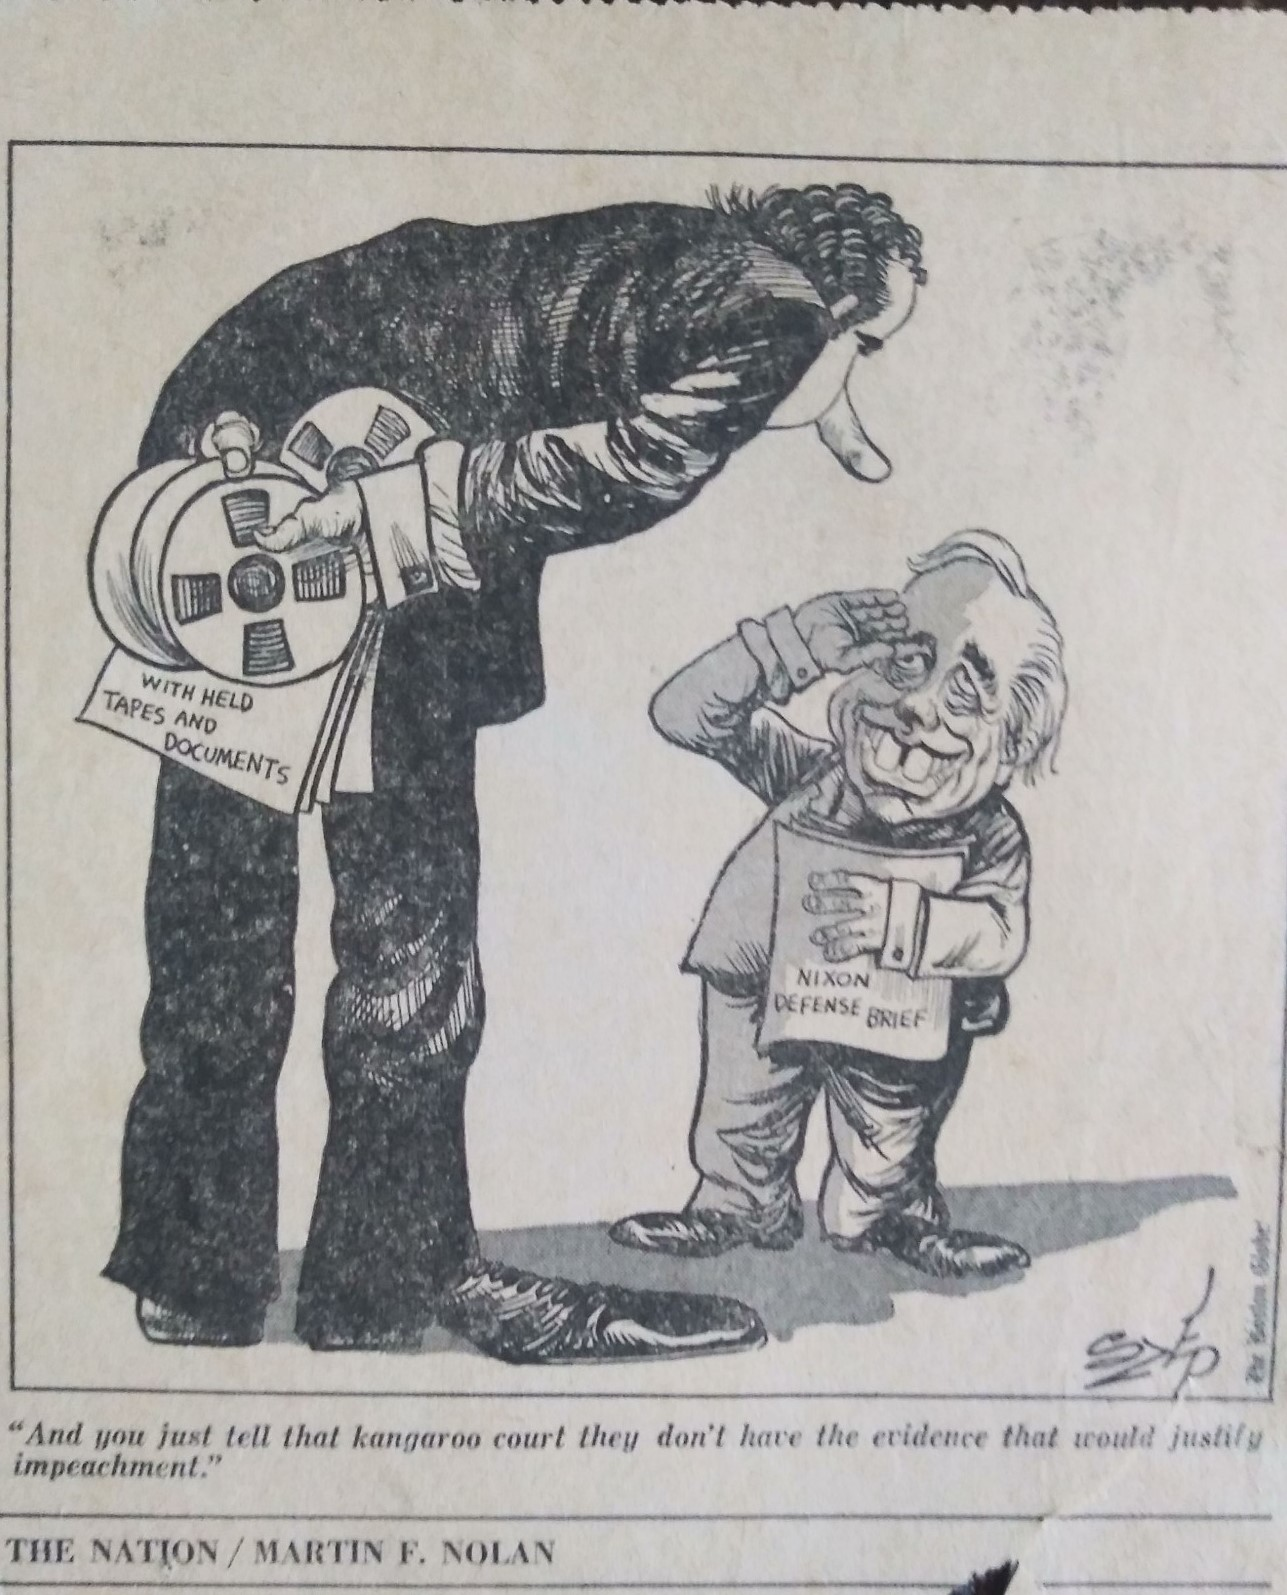 "Caption: 1974 Big Tirade: And you tell that kangaroo court they don't have the evidence that would justify impeachment..."", Credit: Paul Szep, Boston Globe, August, 1974"